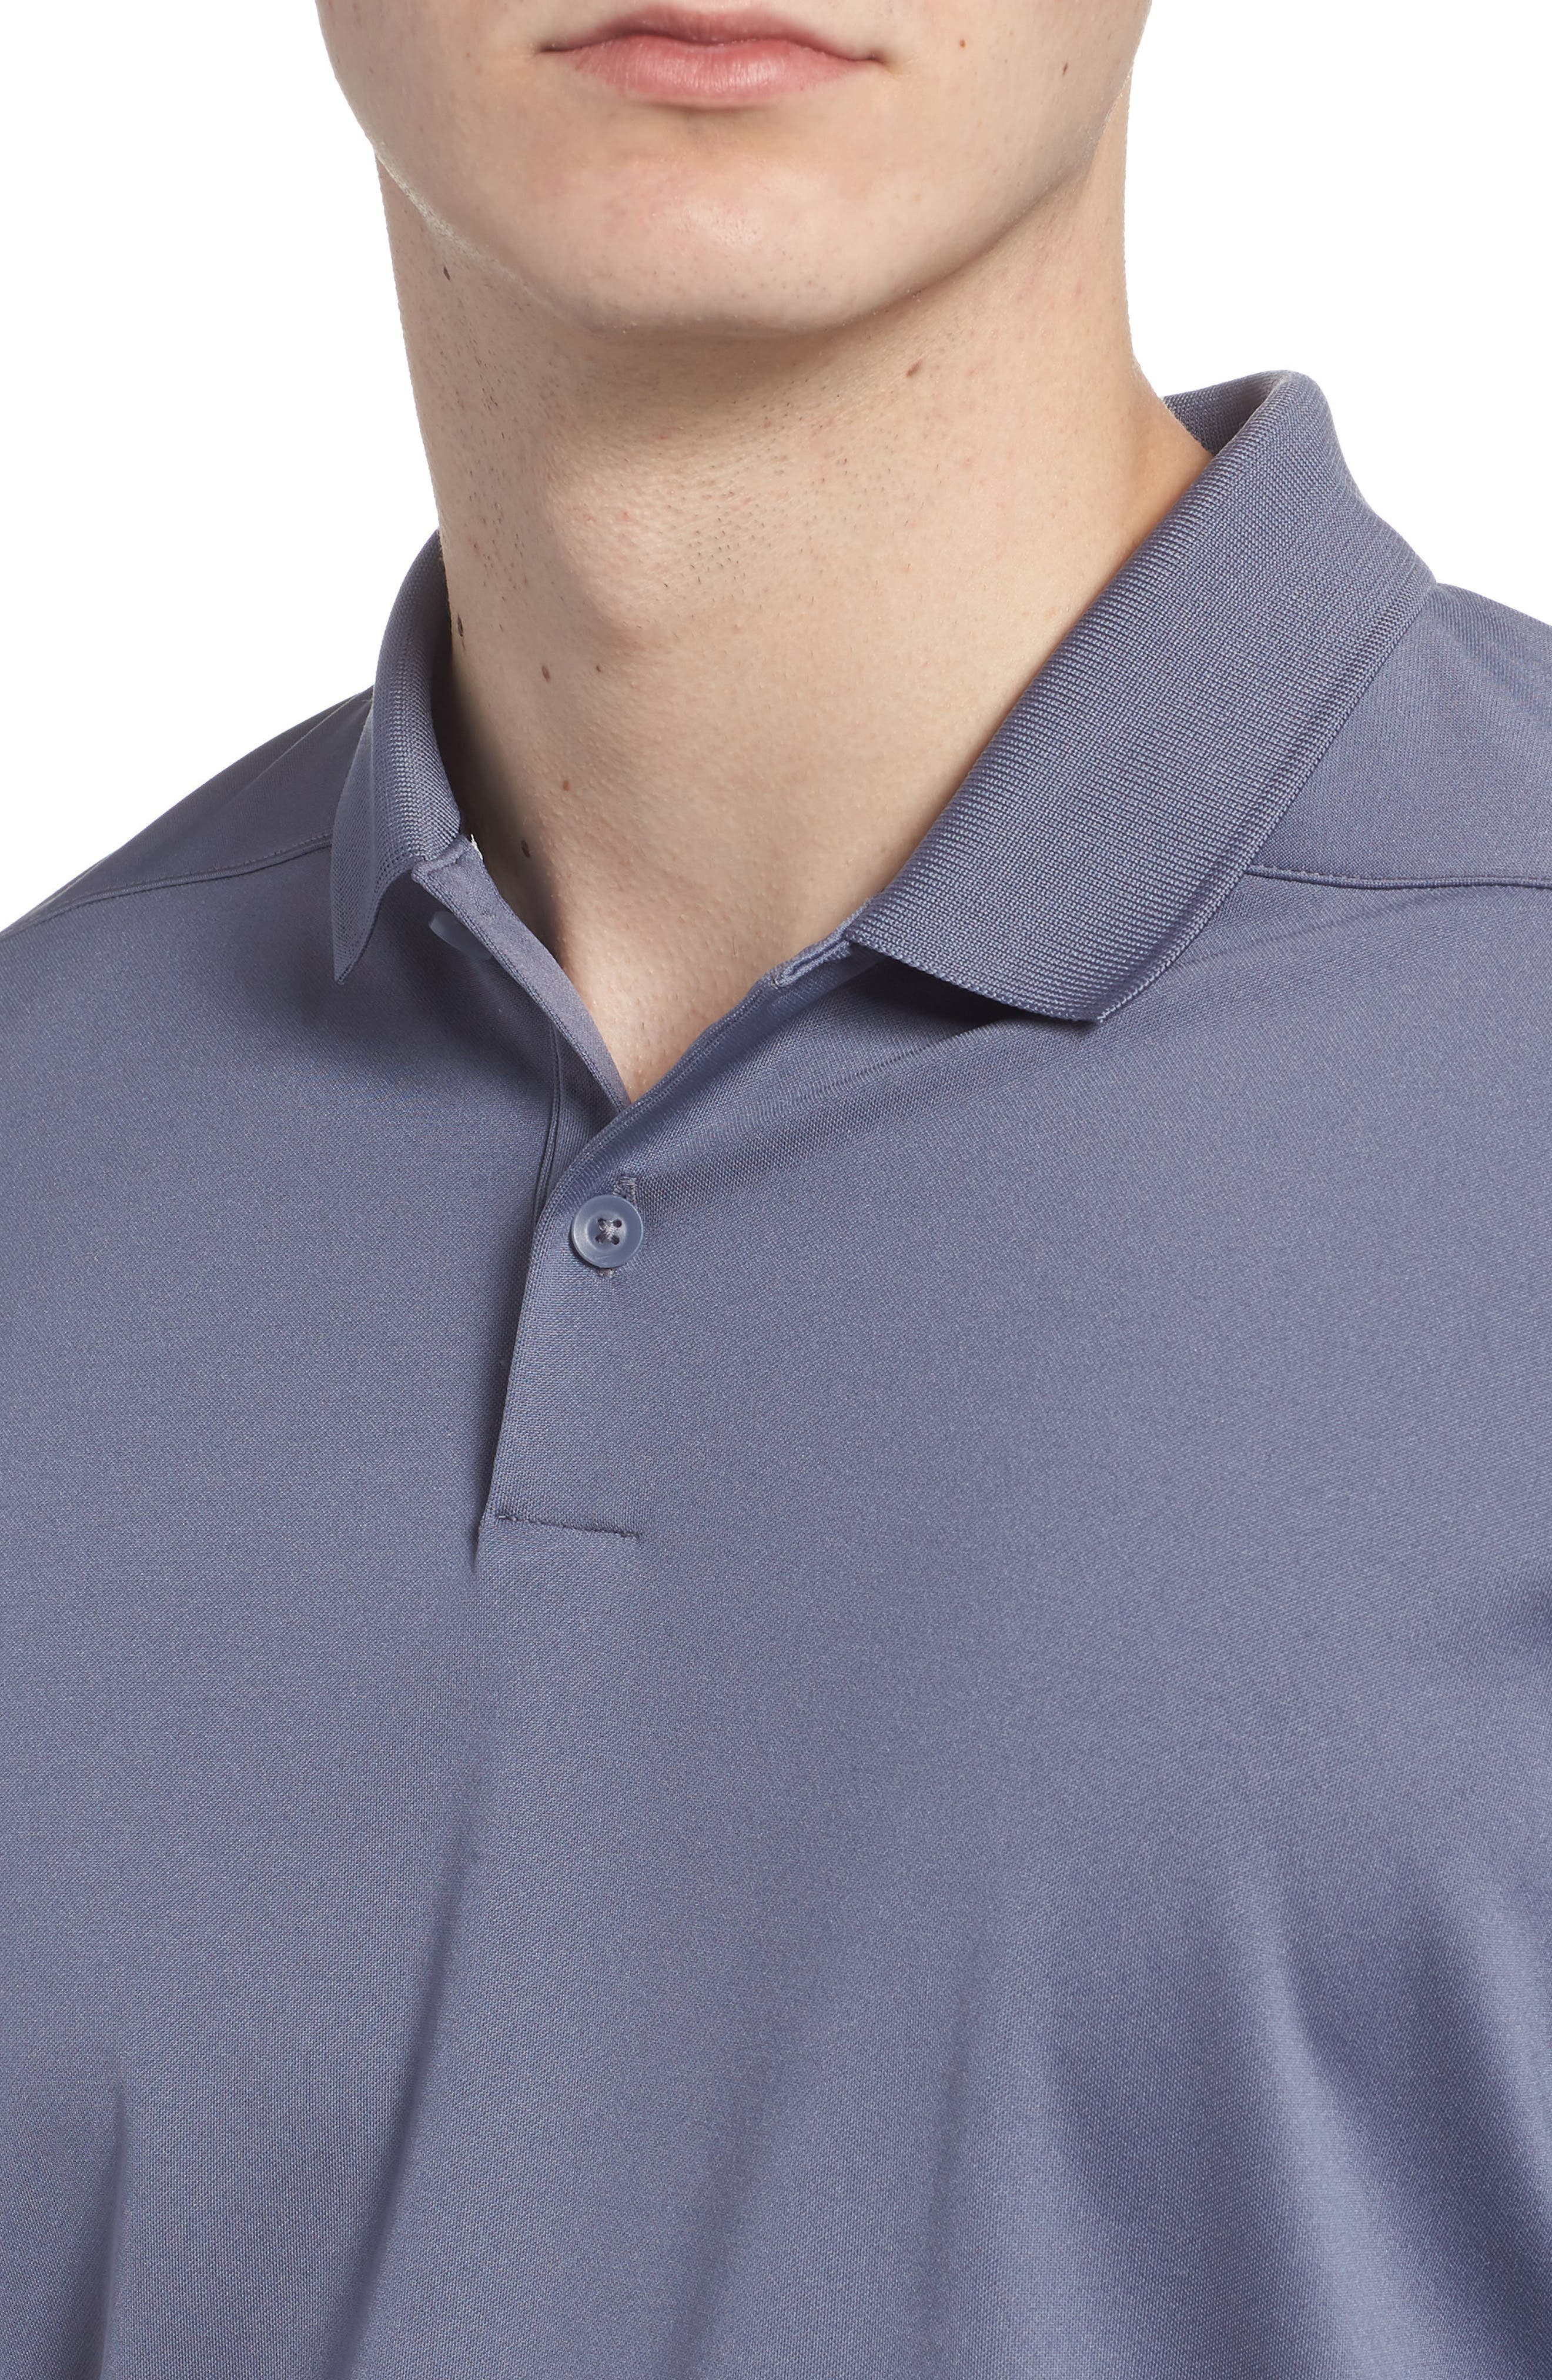 Dry Victory Golf Polo,                             Alternate thumbnail 4, color,                             Light Carbon/ Black